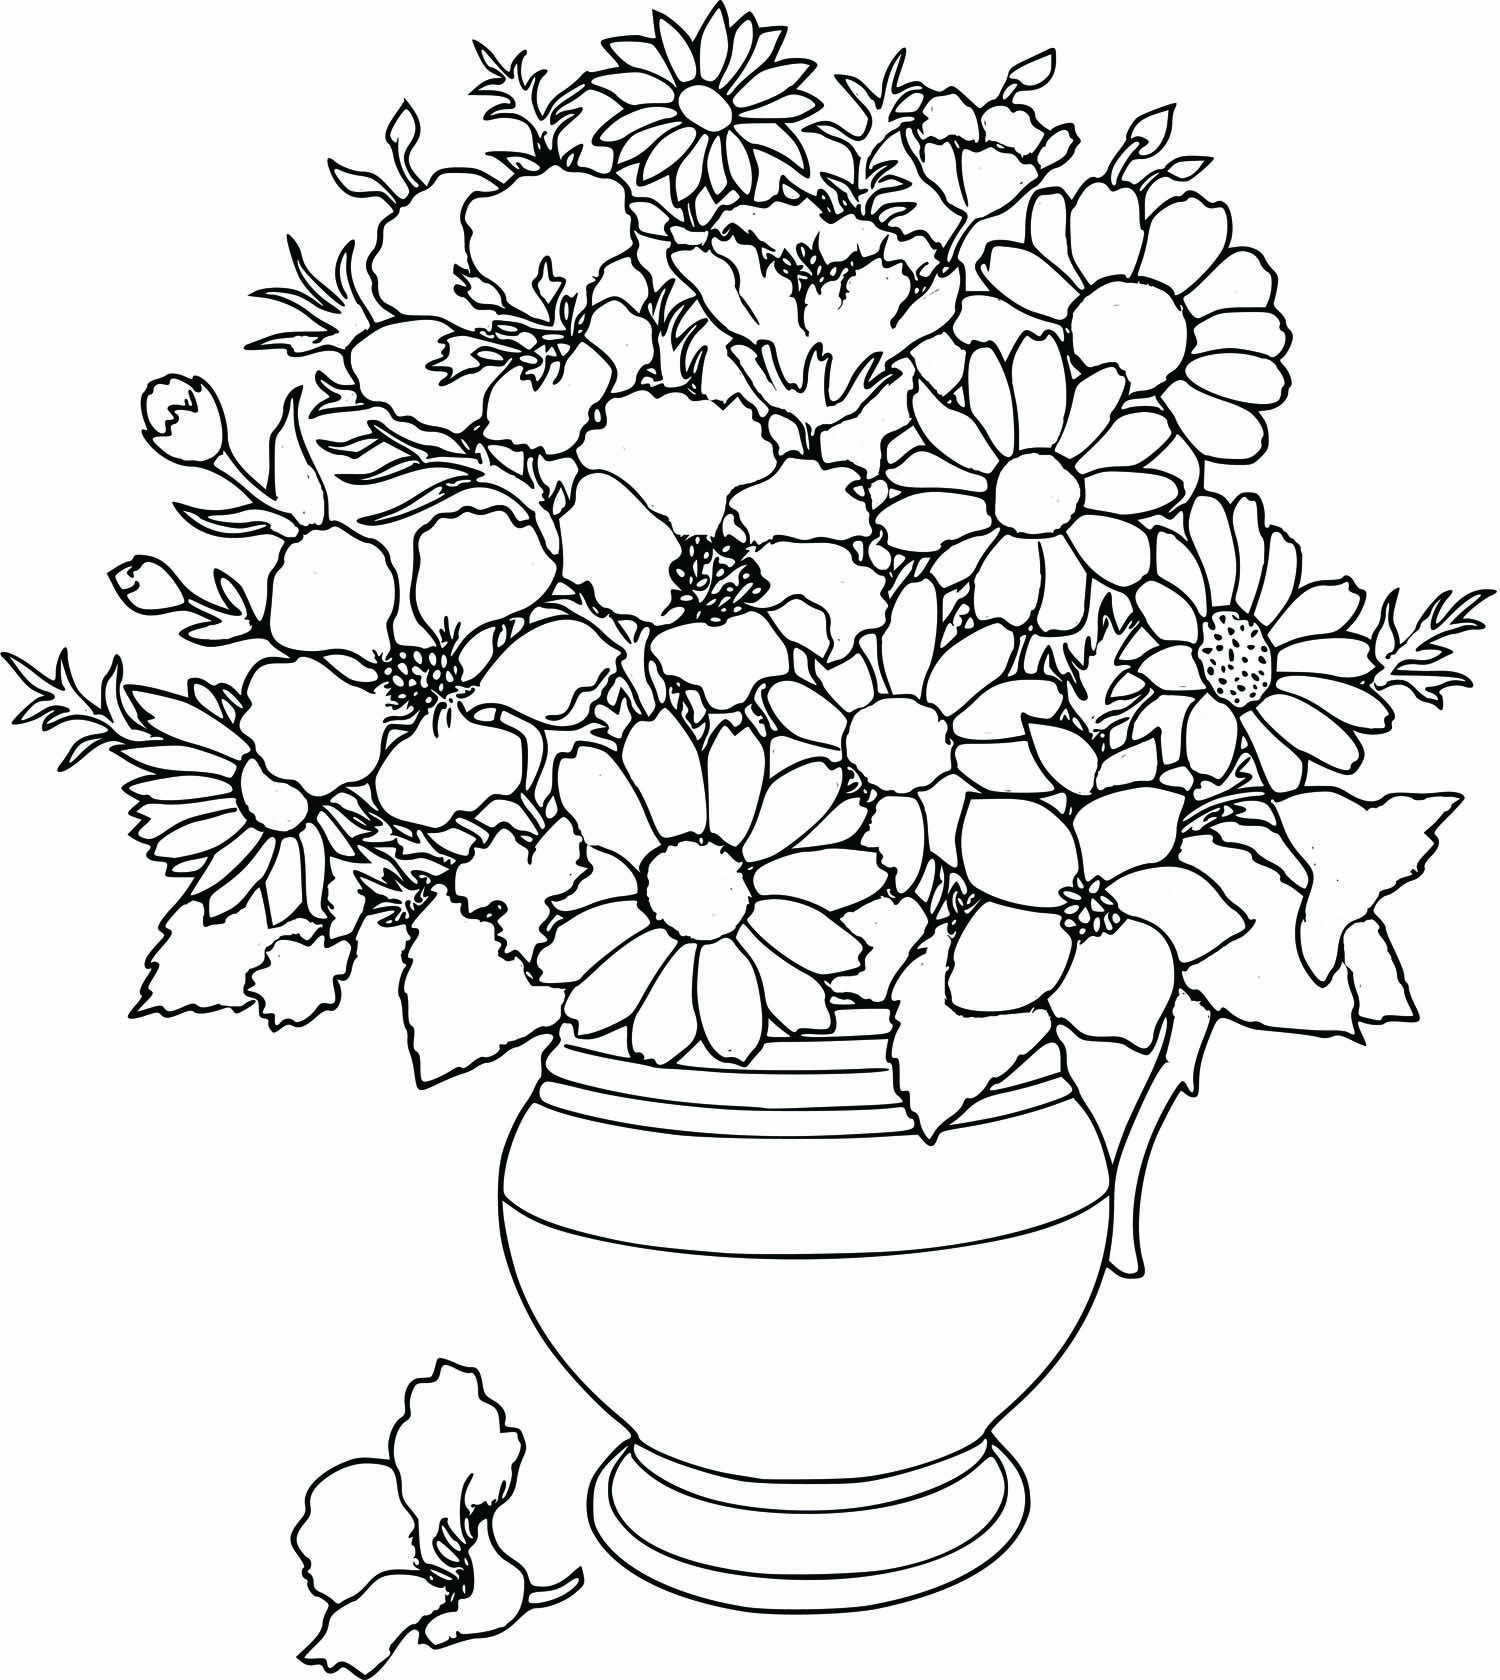 Mothers Day Coloring Pages Roses Free Large Images Flower Coloring Pages Printable Flower Coloring Pages Spring Coloring Pages